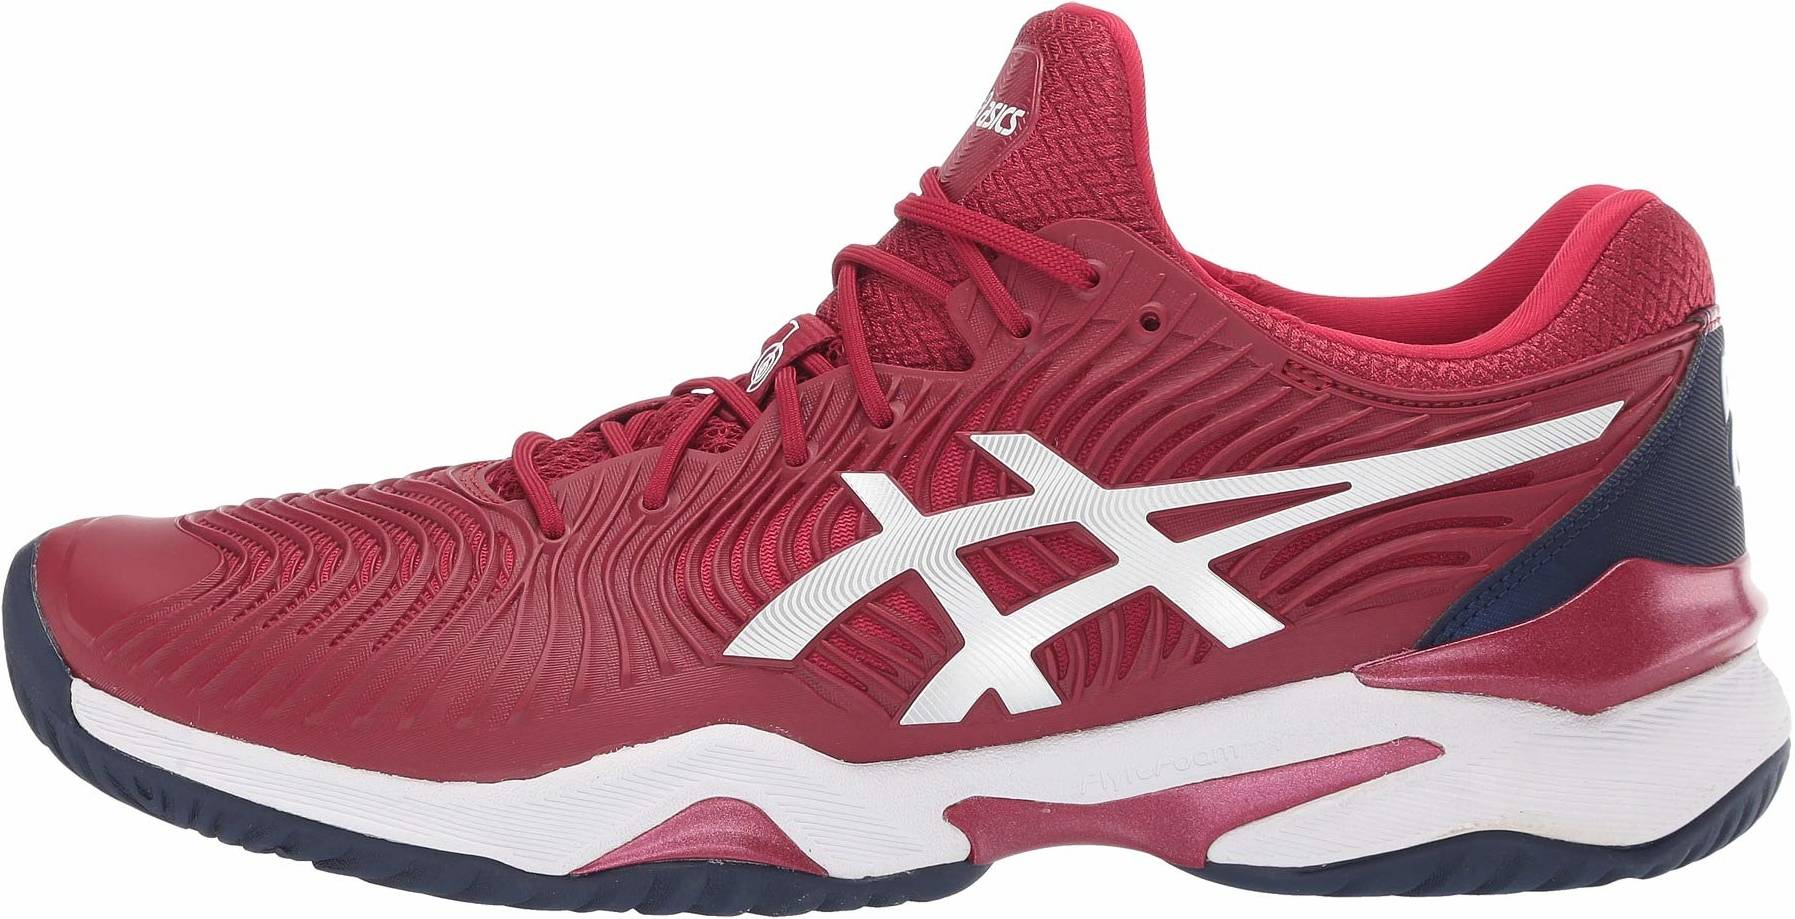 Save 31% on Asics Tennis Shoes (19